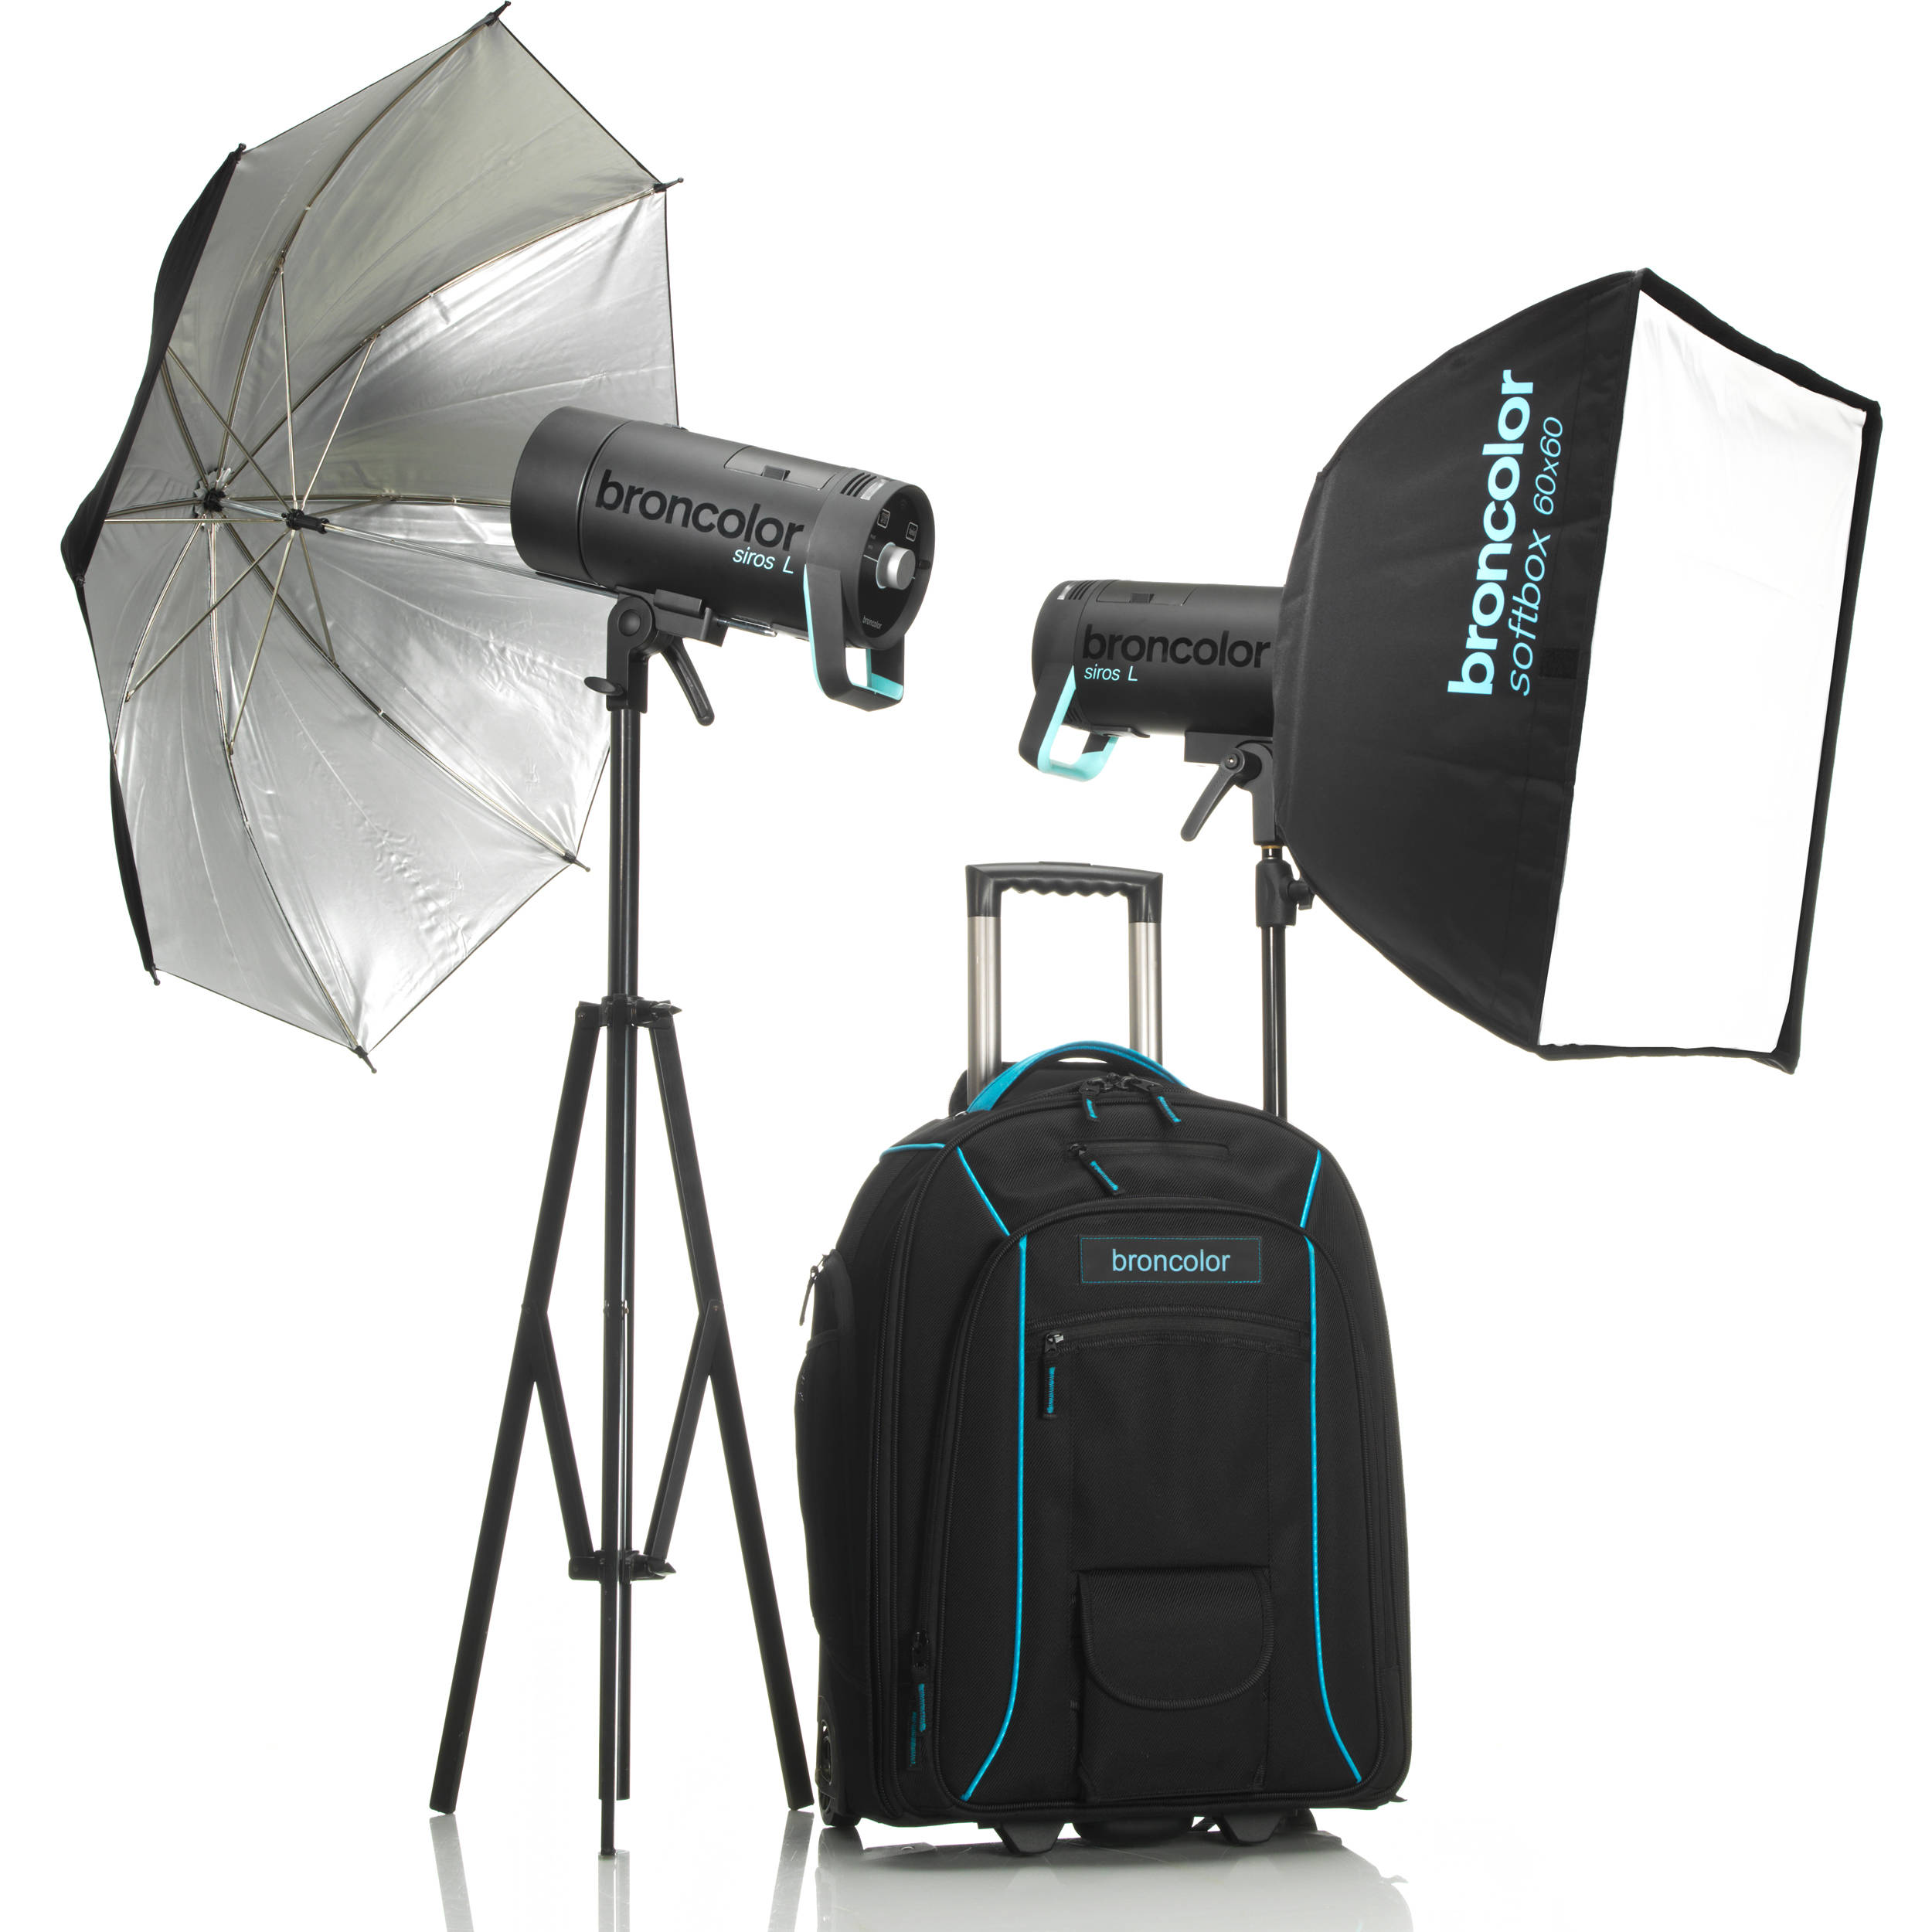 Broncolor siros l 800ws battery powered 2 light b 3175107 bh battery powered 2 light outdoor kit 2 stand s not included aloadofball Gallery